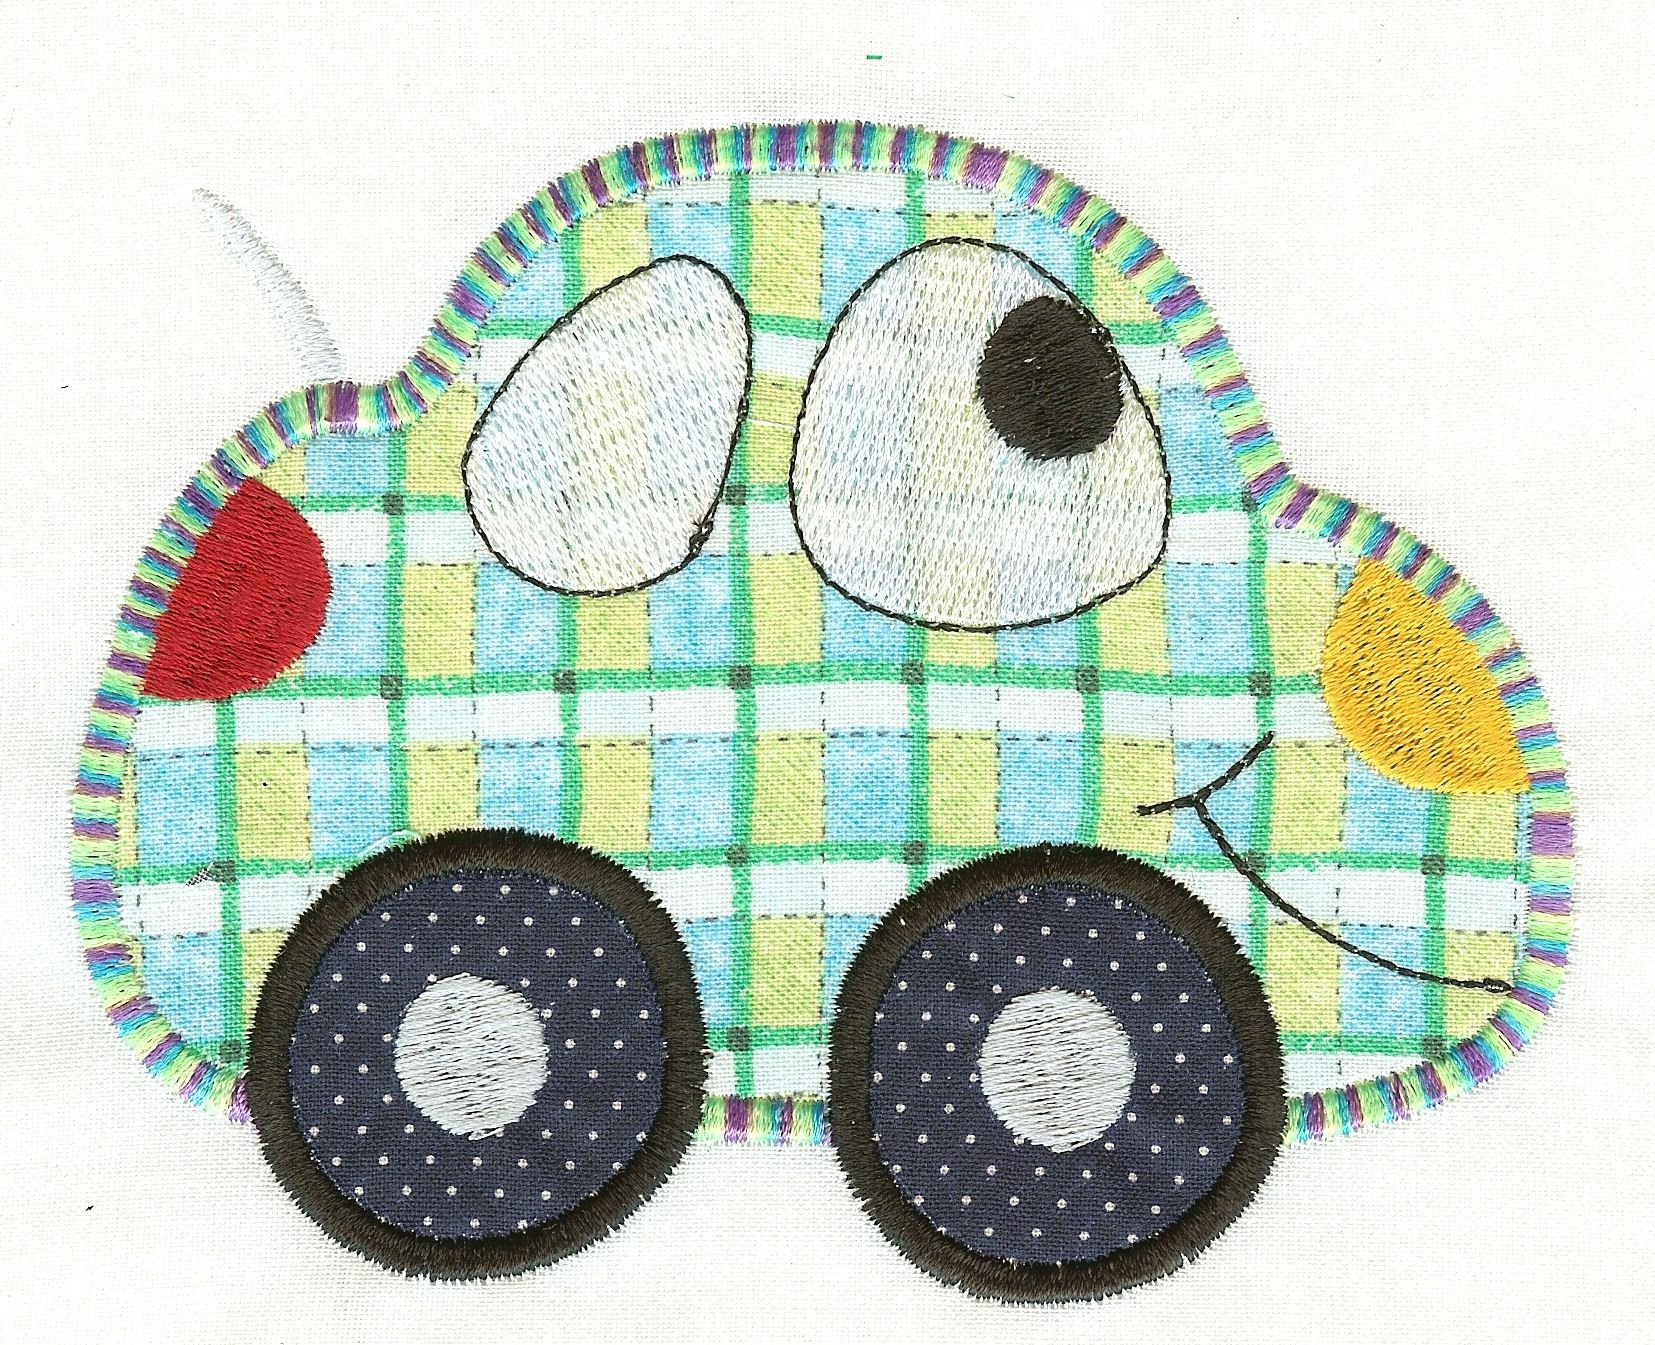 free machine applique embroidery designs to download